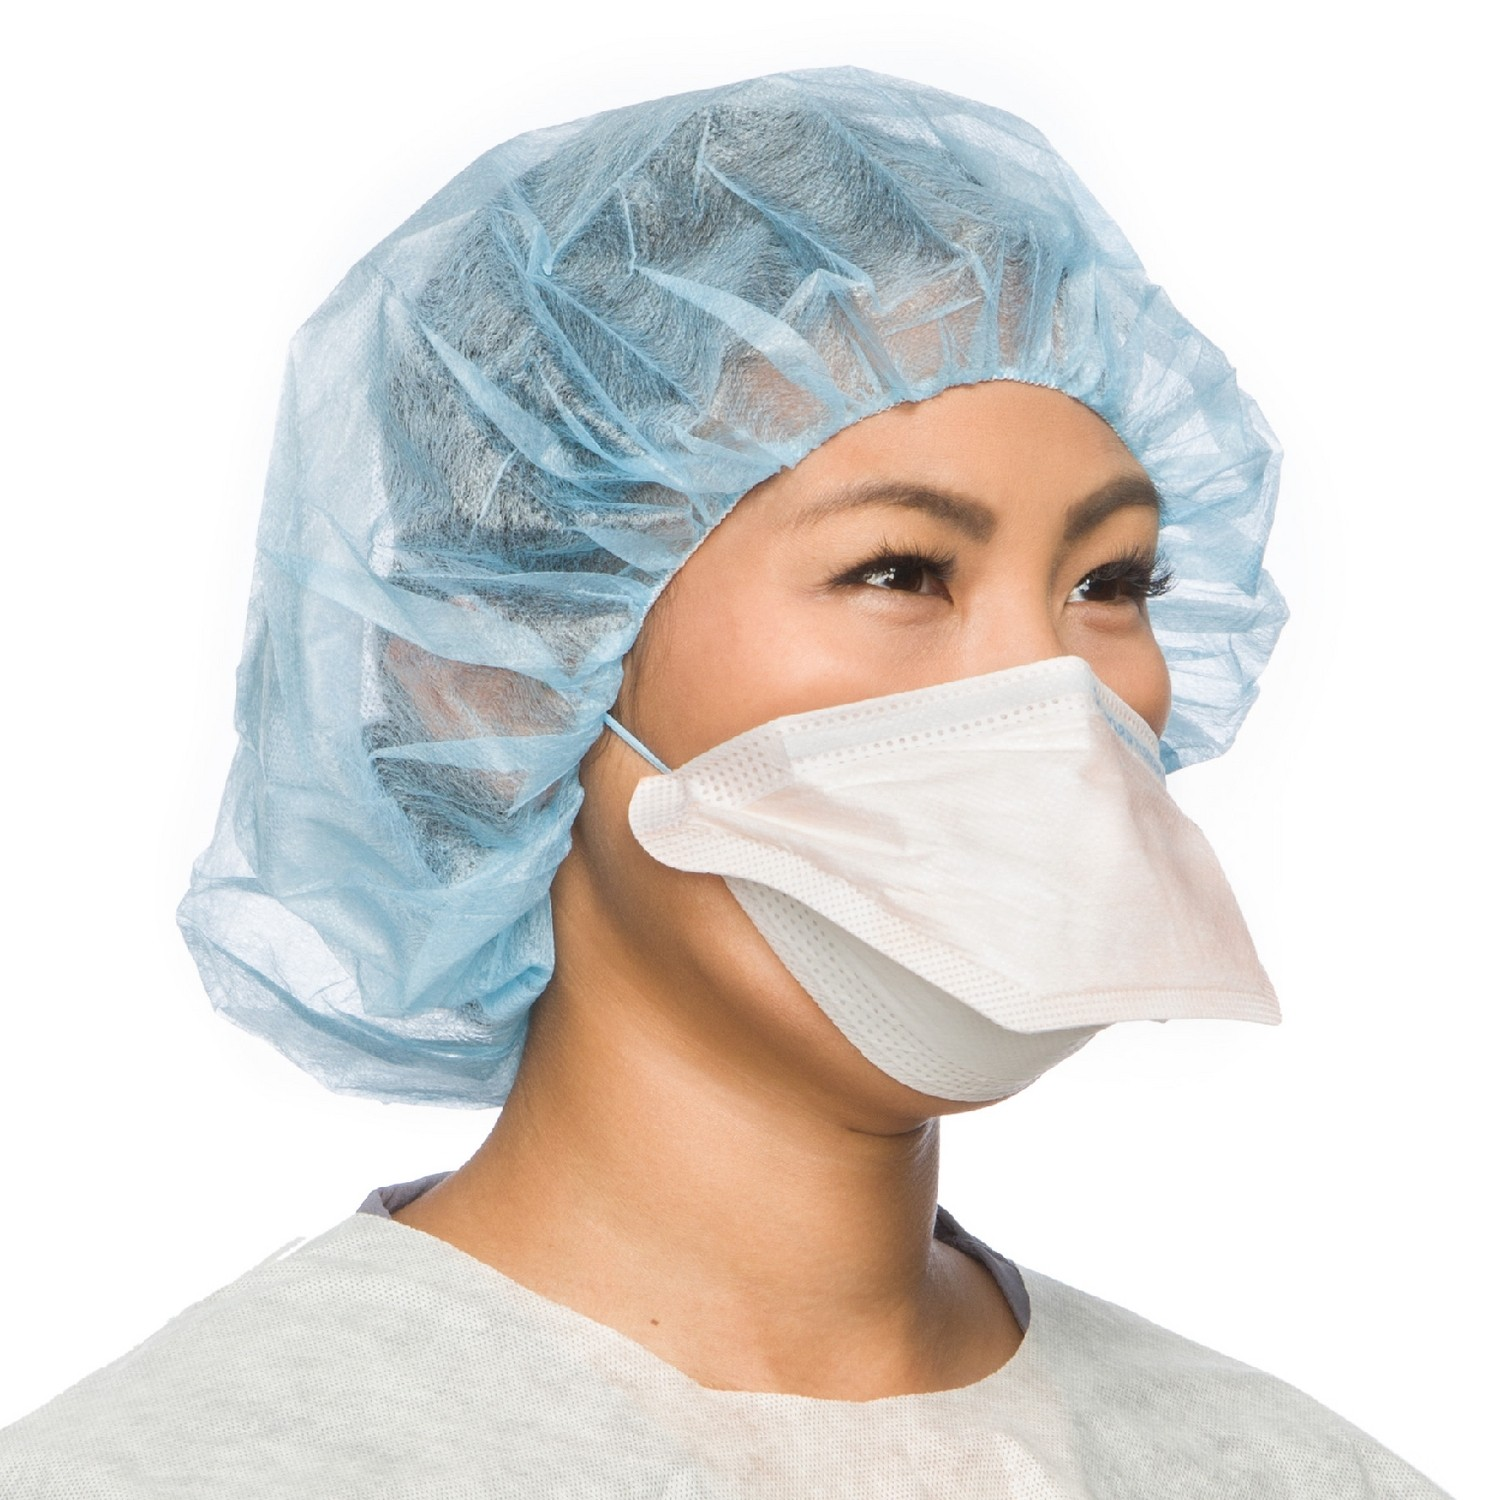 dust masks and respirators n95